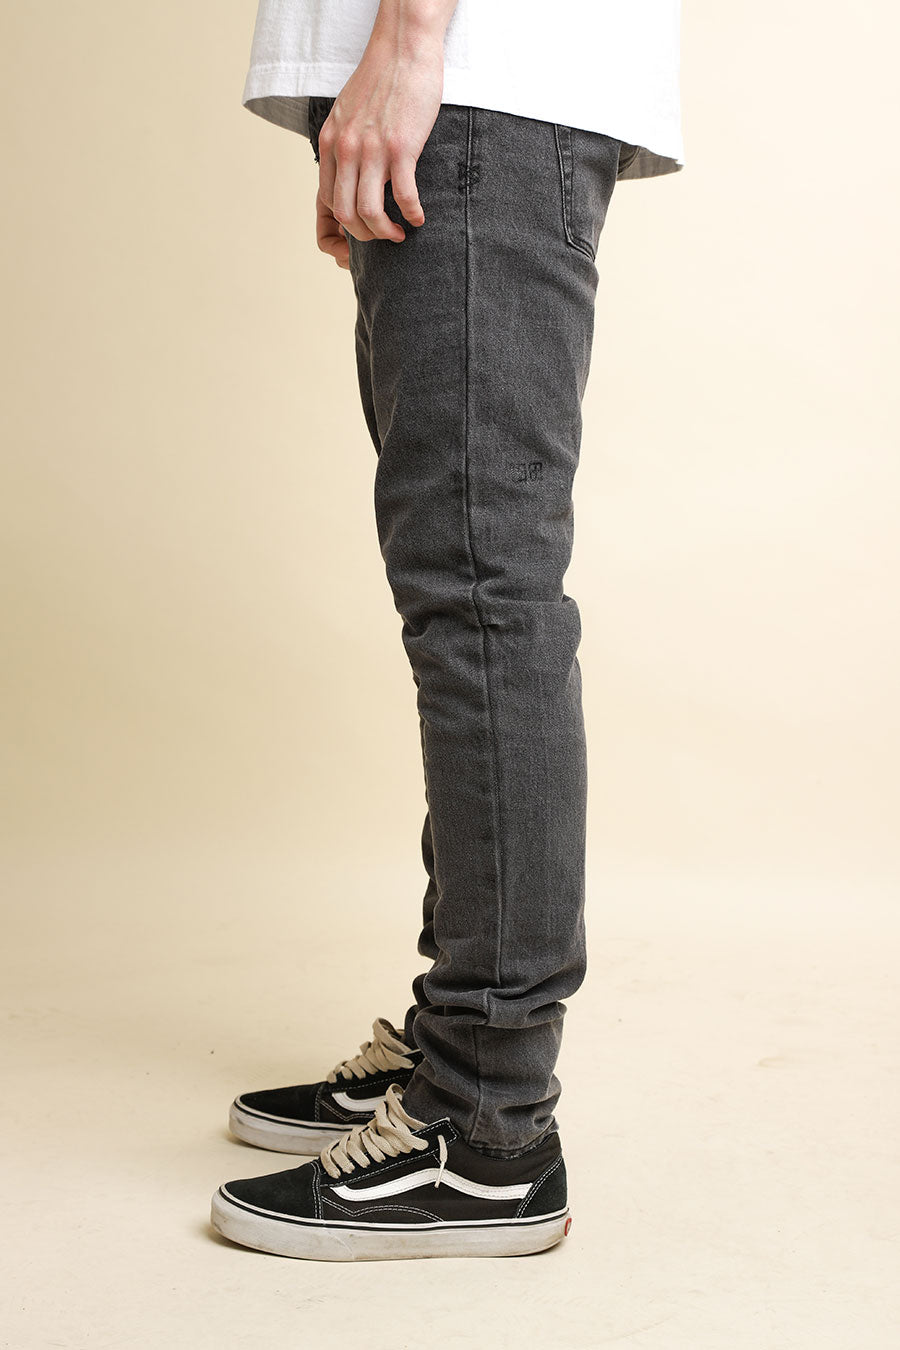 Ksubi - Dark Grey Chitch Washed Cement Jeans